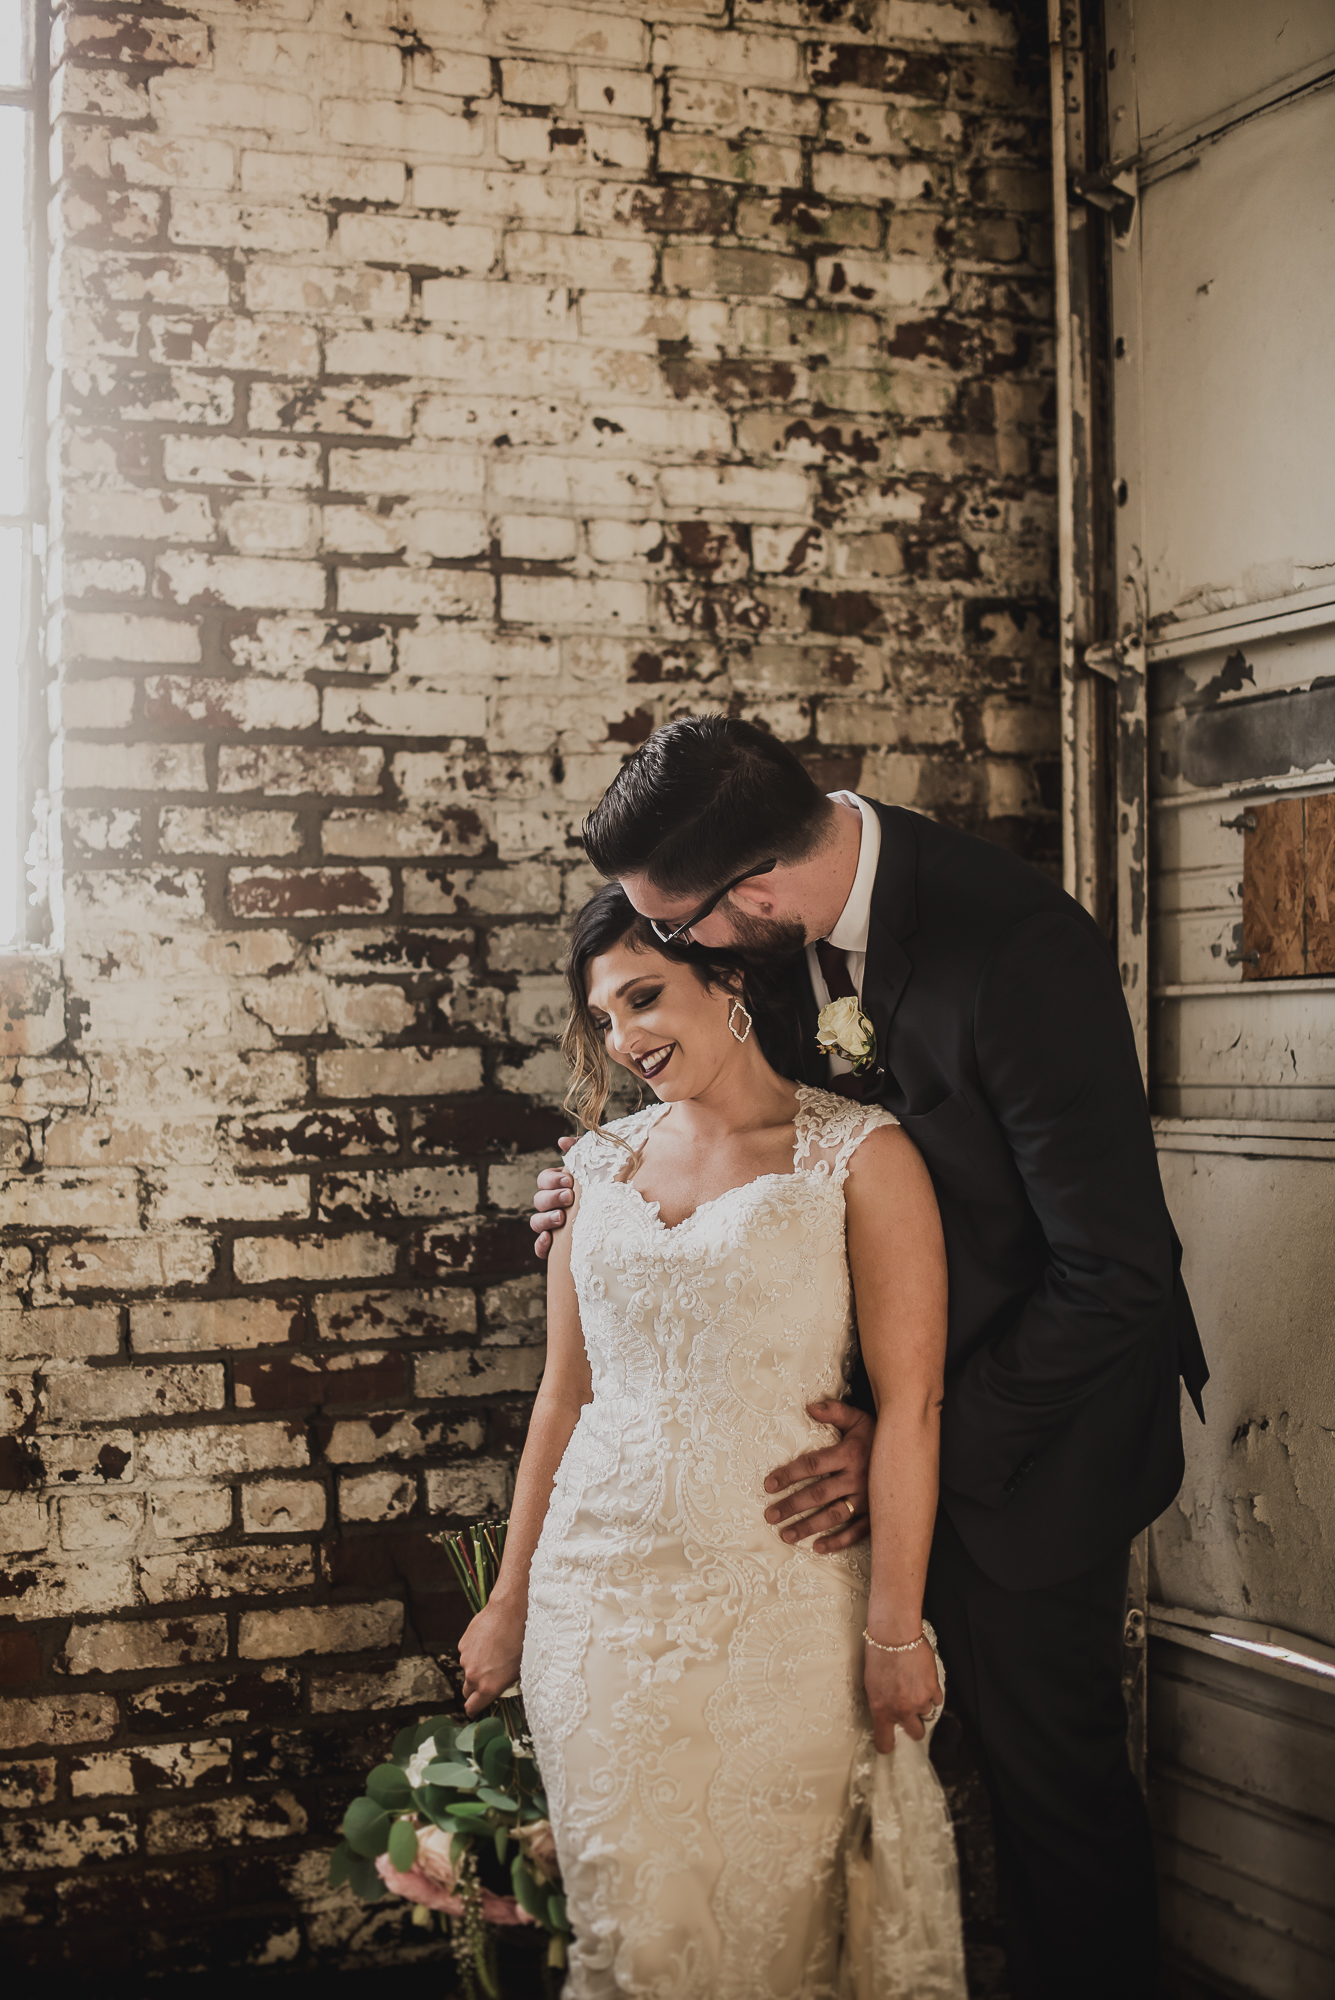 Melissa Cervantes Photography _ Kelsey + Ben Junebug Weddings Submission-106.jpg